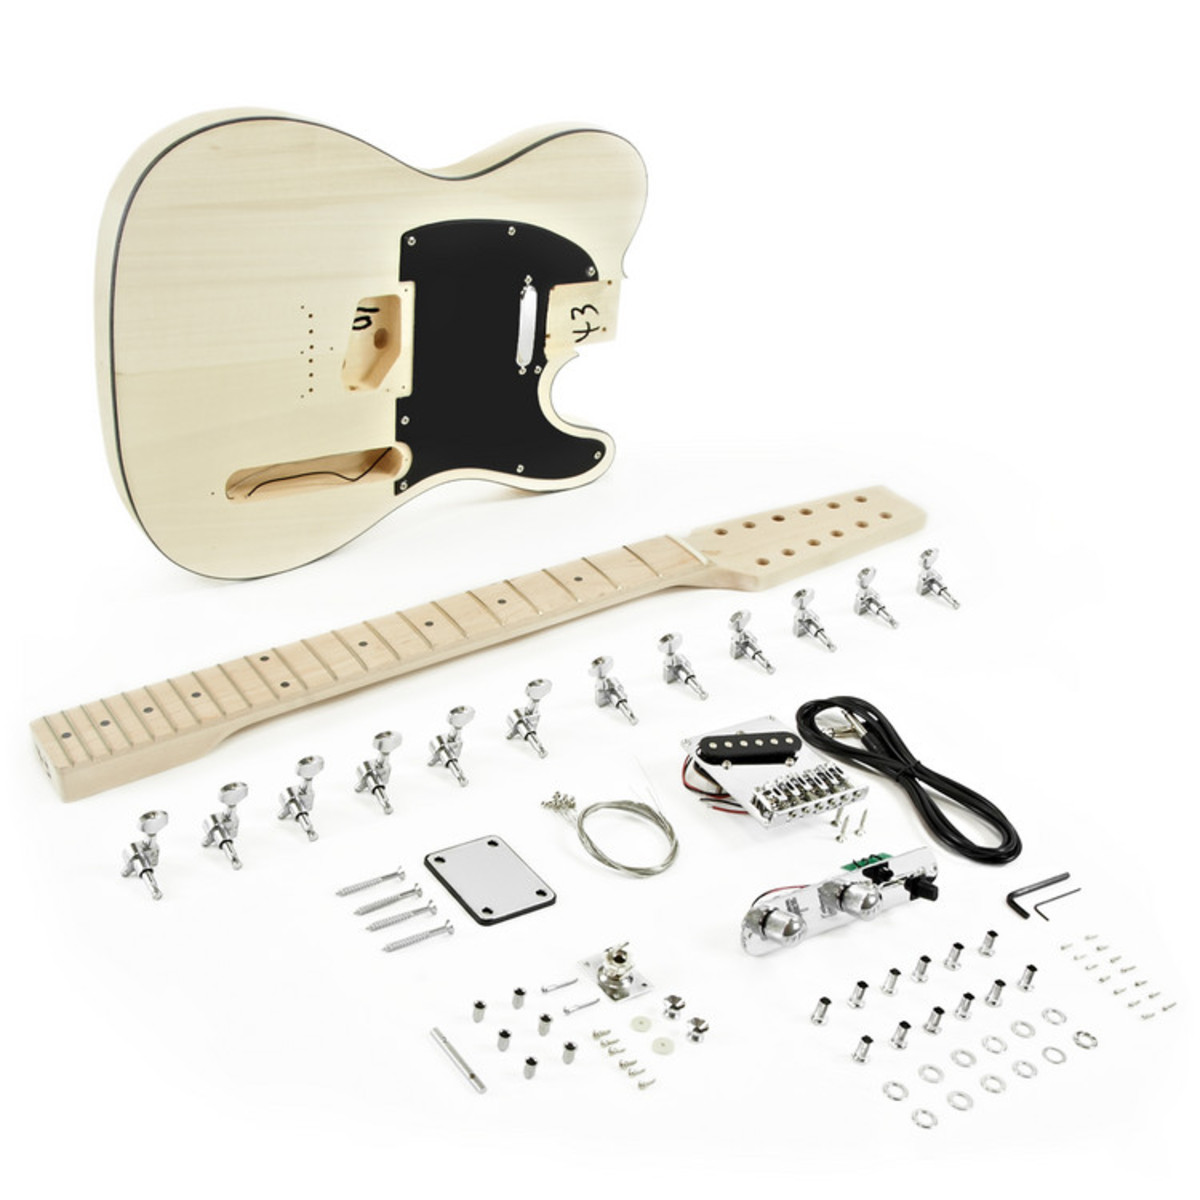 12 String Knoxville Electric Guitar DIY Kit